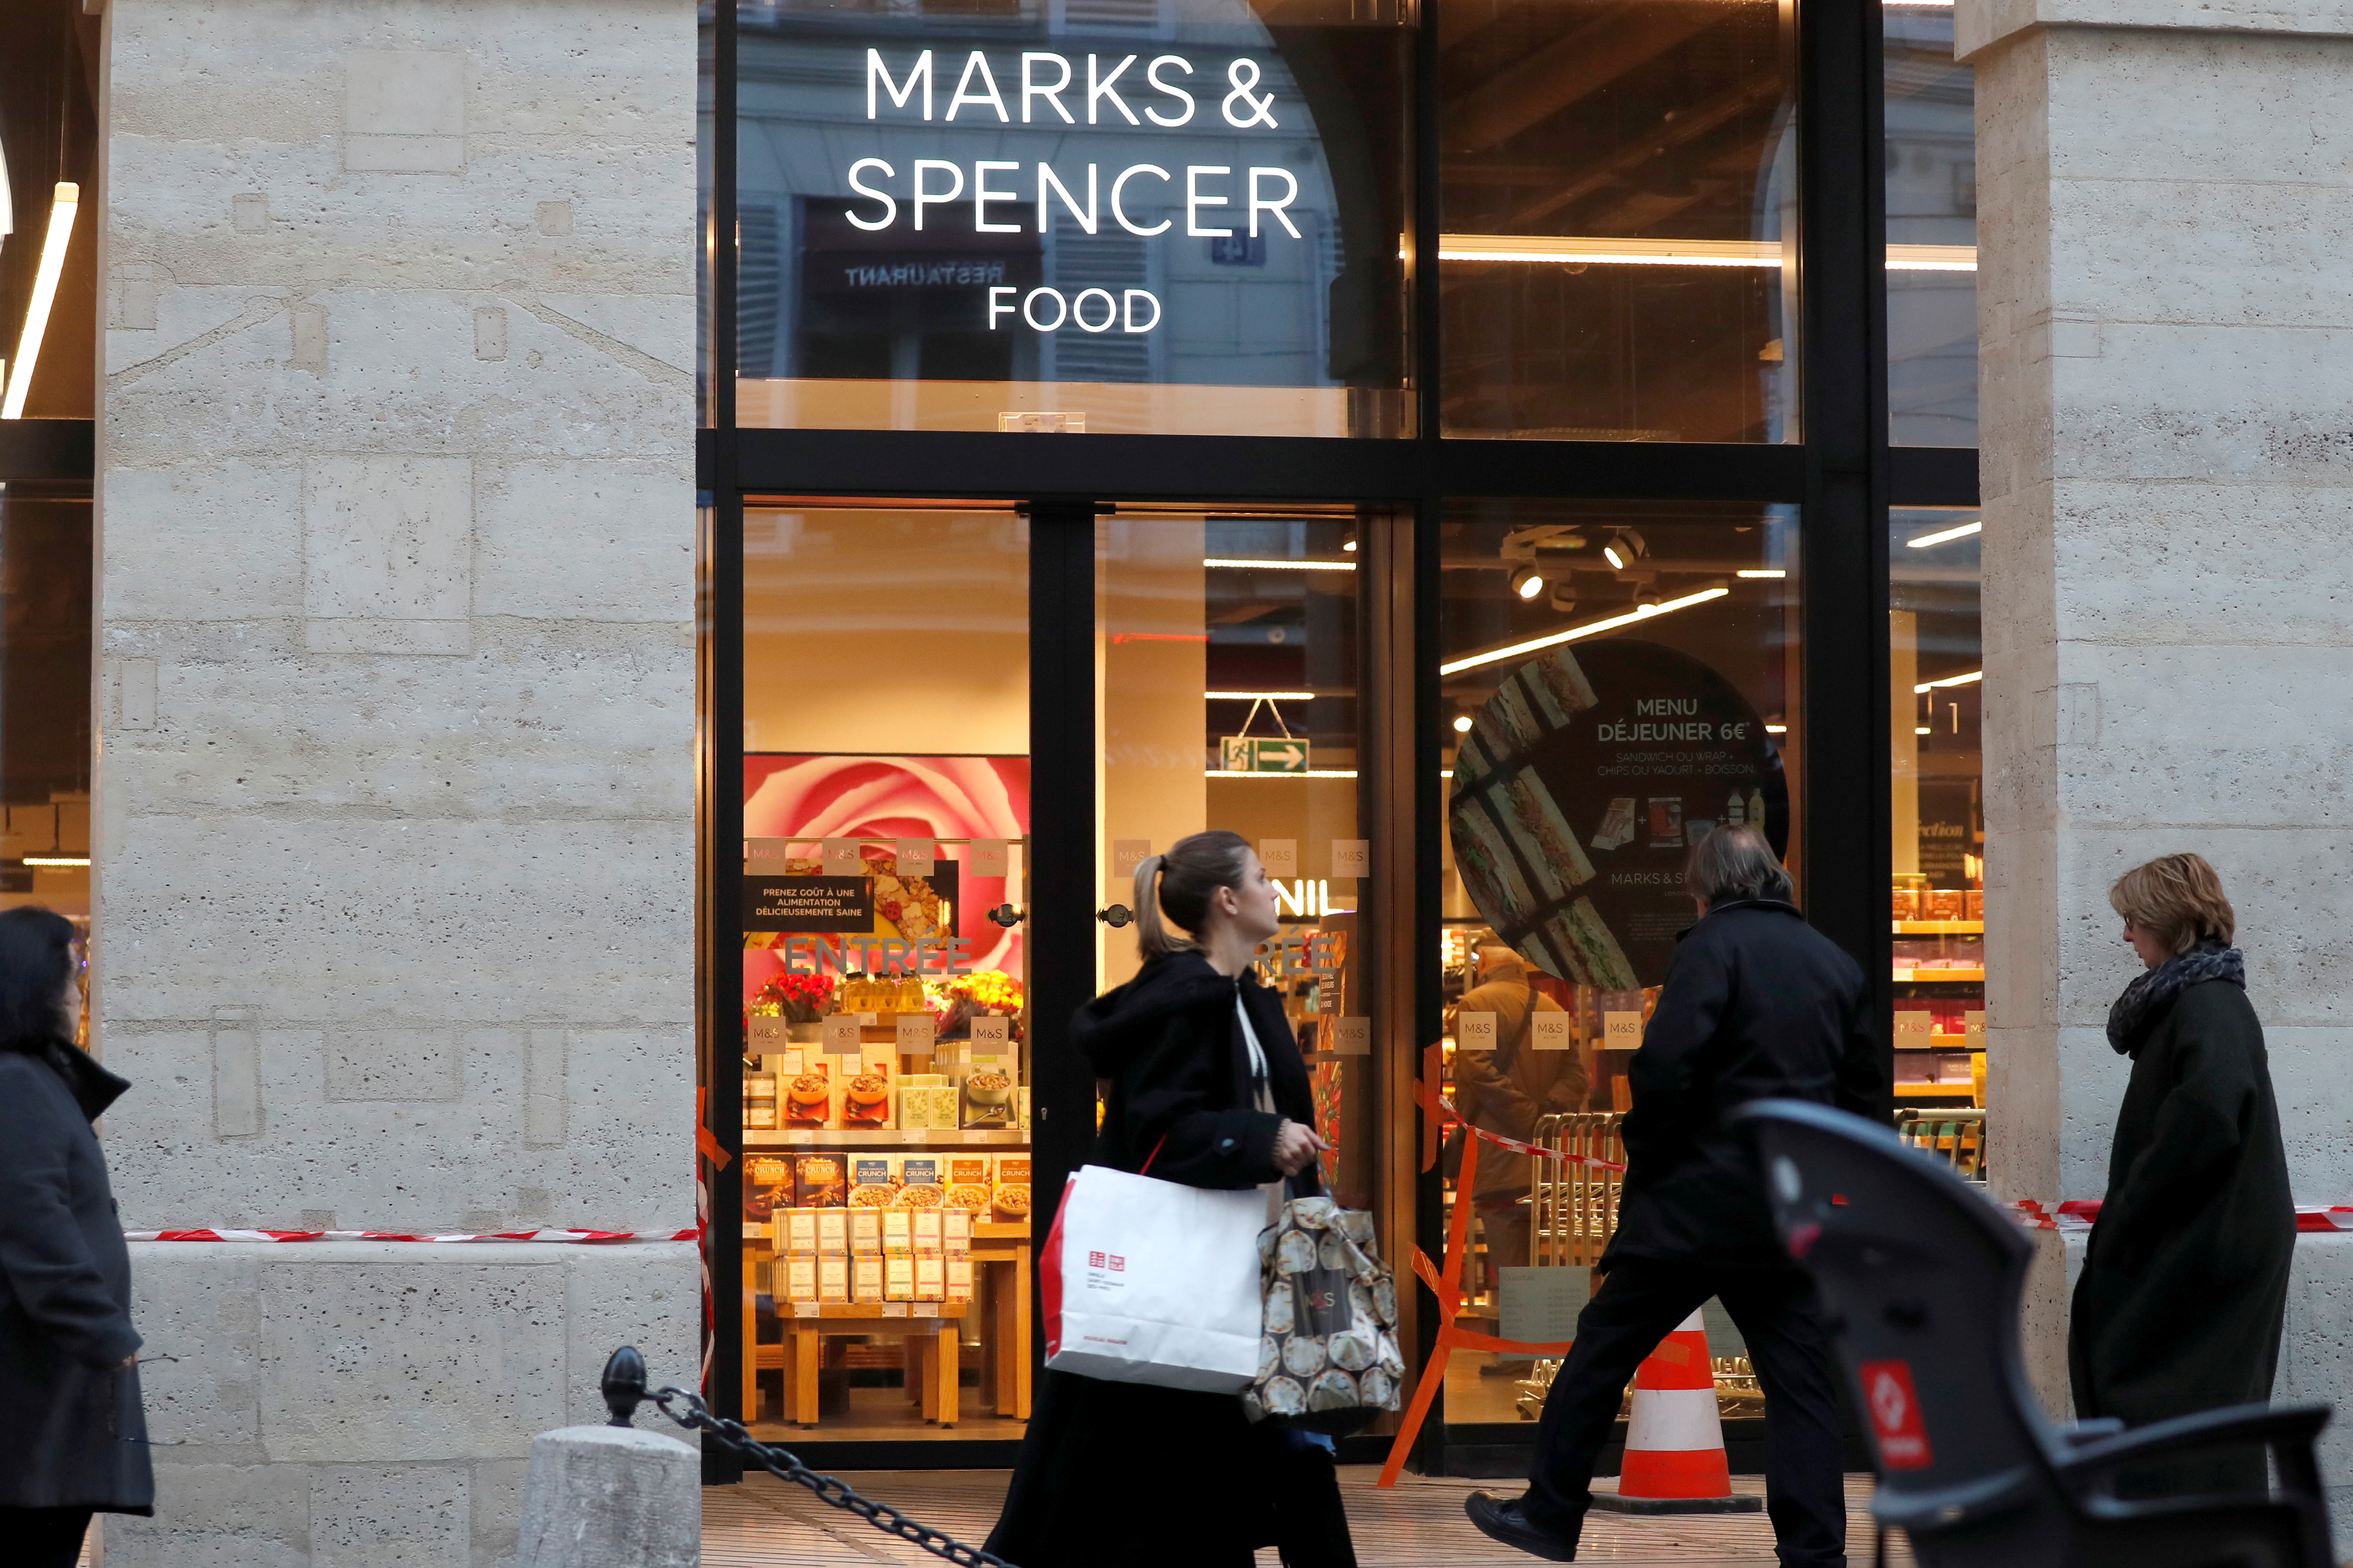 The logo of Marks & Spencer is seen in front of a store in Paris, France, January 5, 2017. REUTERS/Charles Platiau